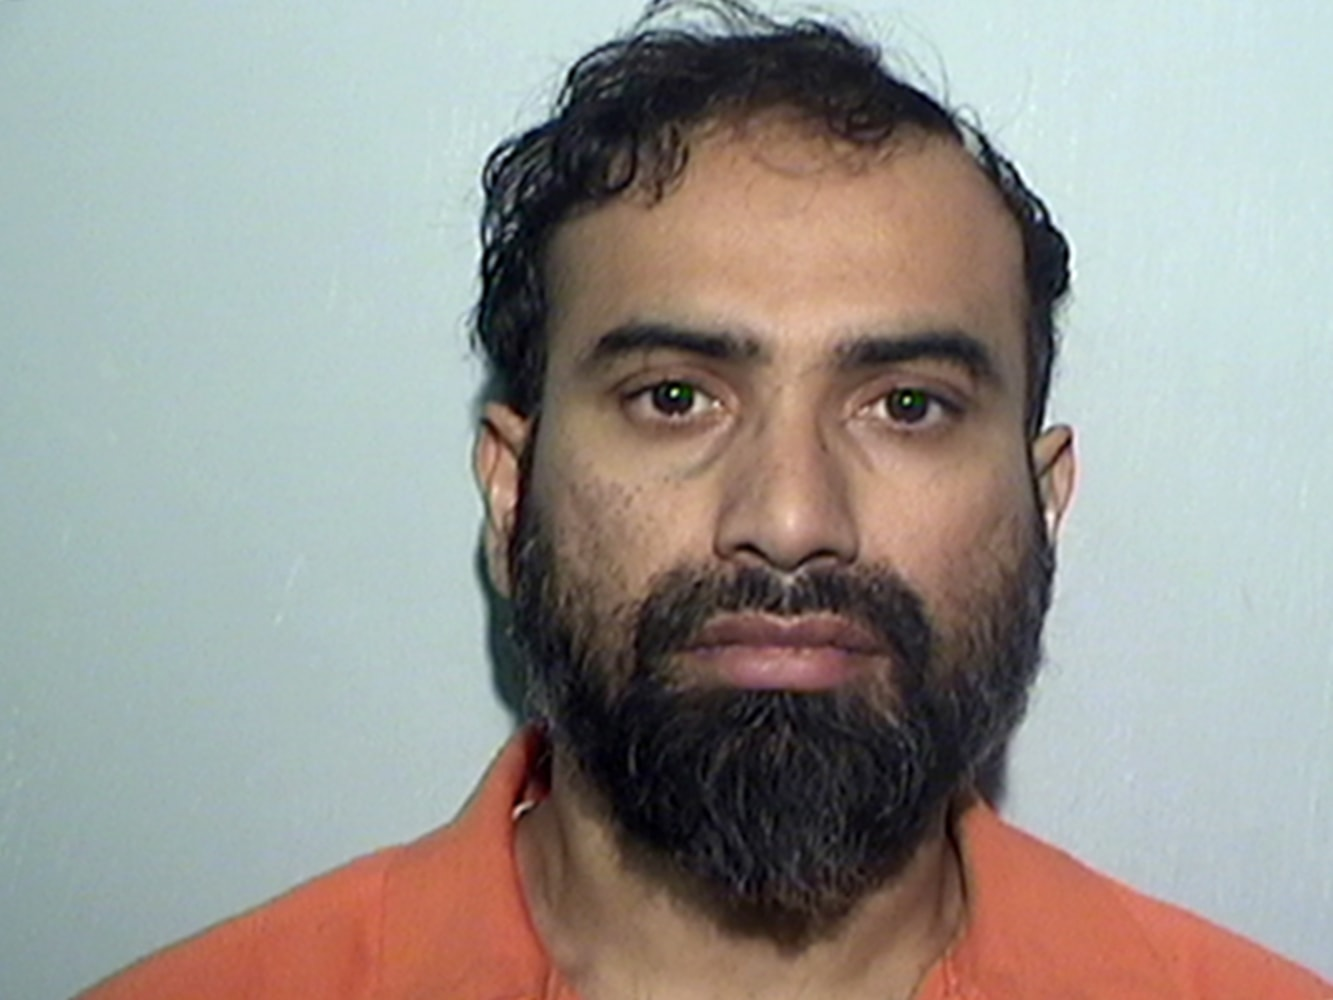 OH man pleads guilty to conspiring to kill judge & support terrorists